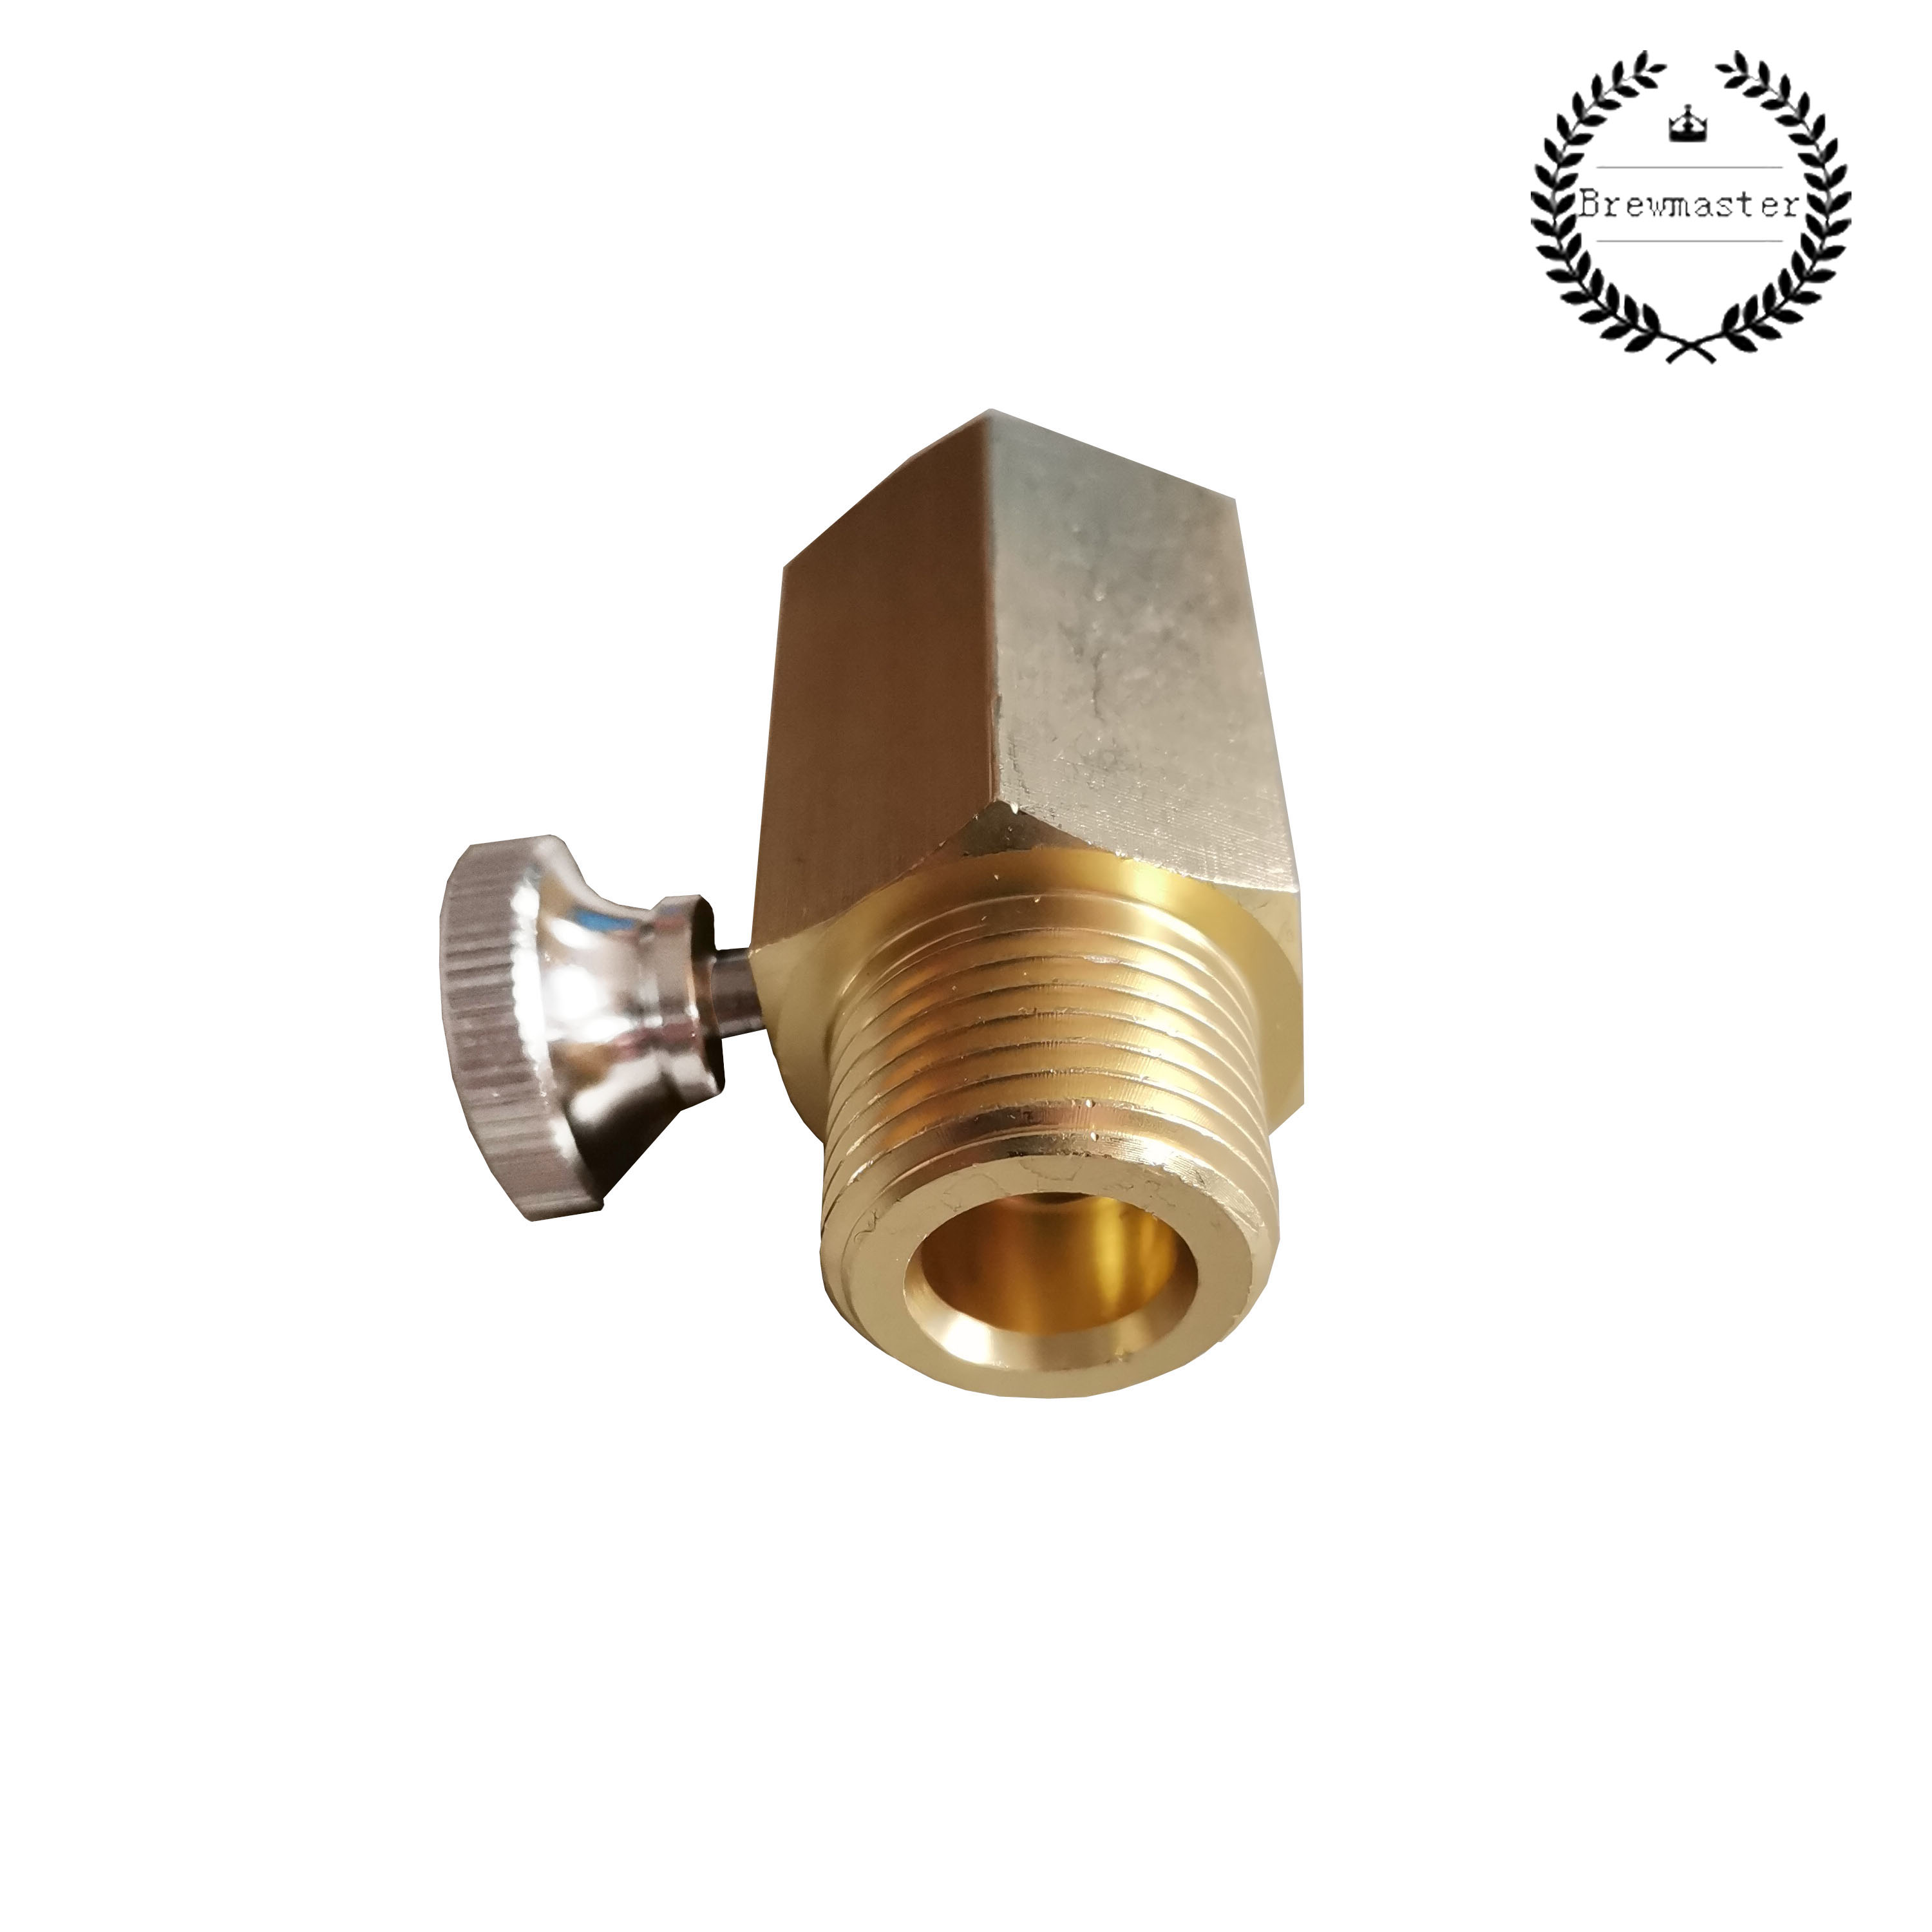 Deluxe Sodastream Cylinder Adapter (with Pin Adjustment) (EU Thread)